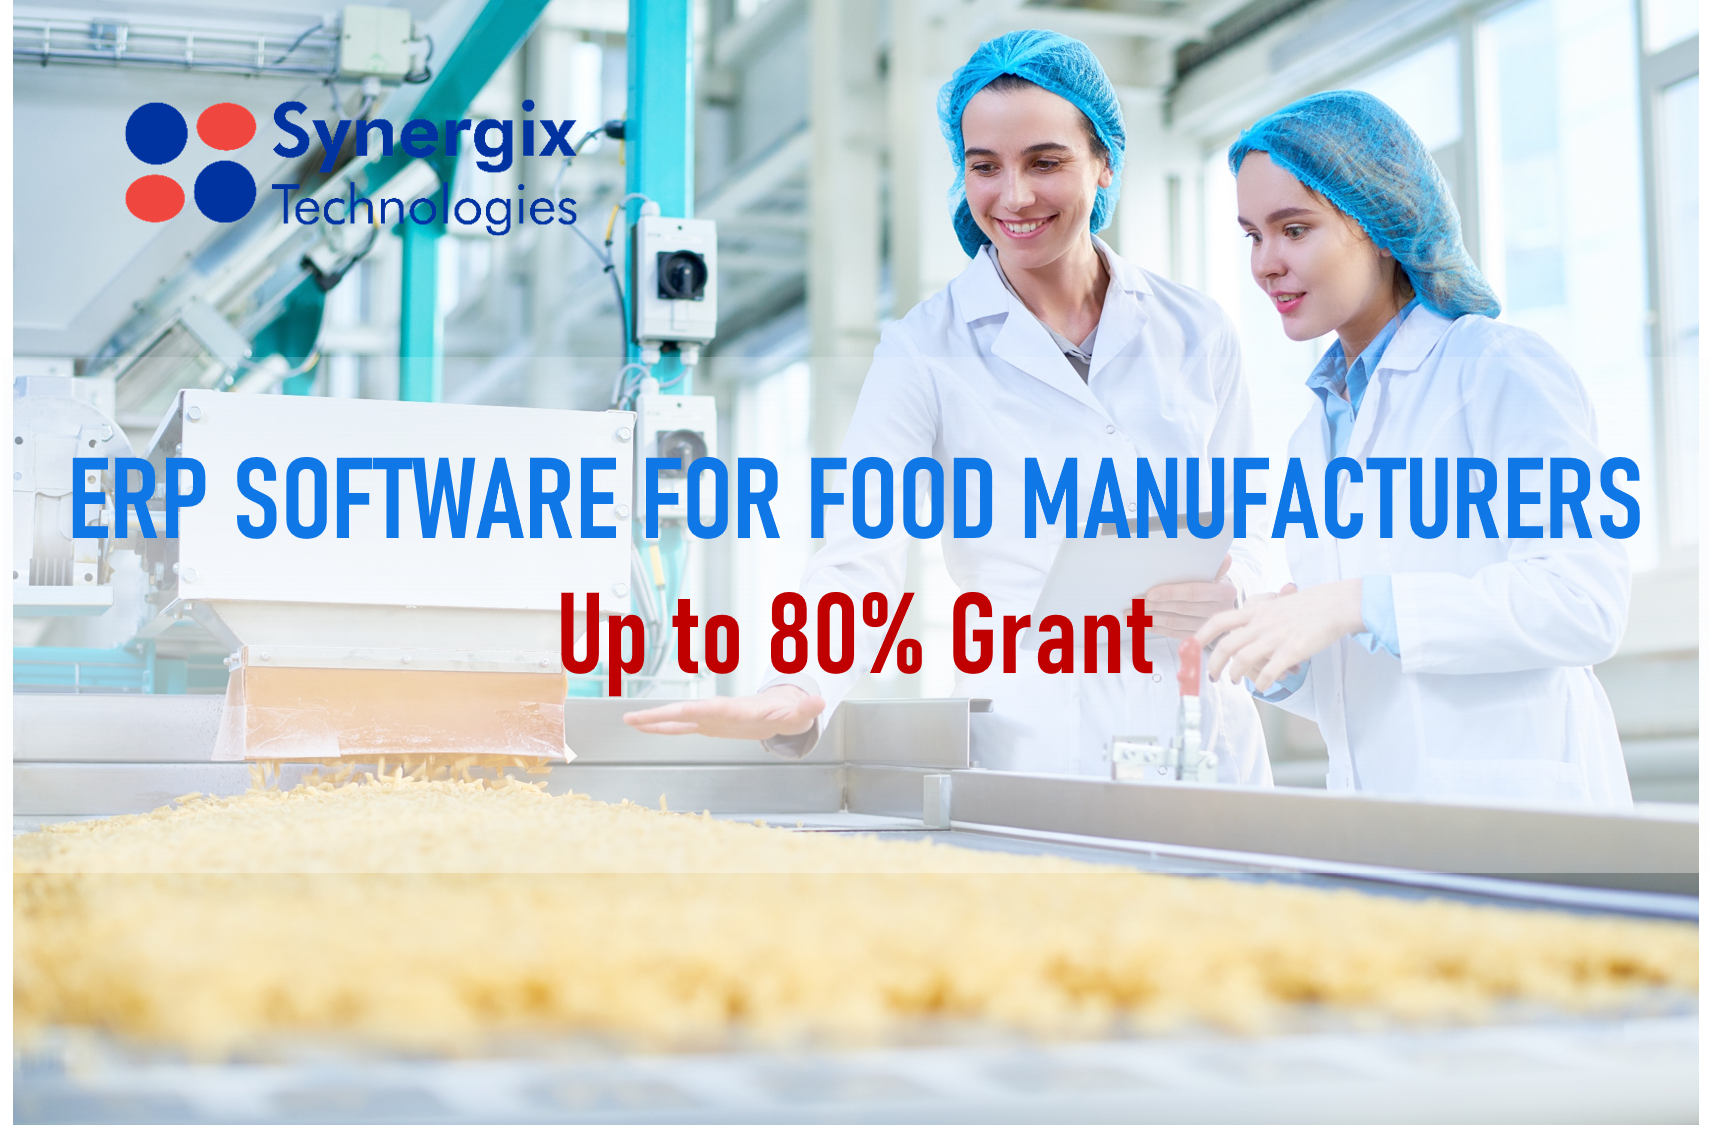 ERP Software for Food Manufacturers